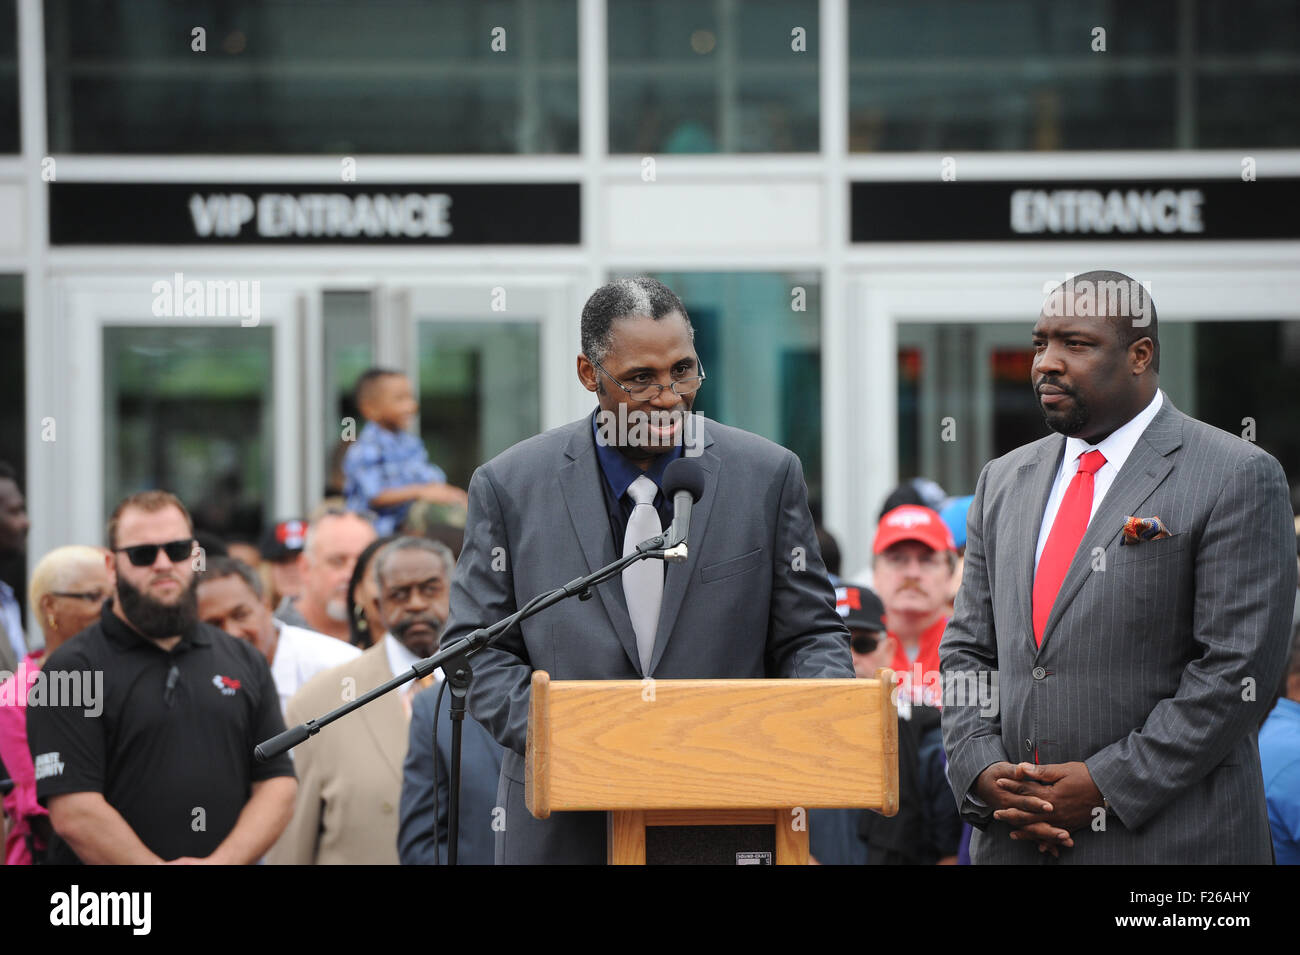 Philadelphia, Pennsylvania, USA. 12th Sep, 2015. MARVIS FRAZIER, son of the late Joe Frazier, receives a proclamation - Stock Image